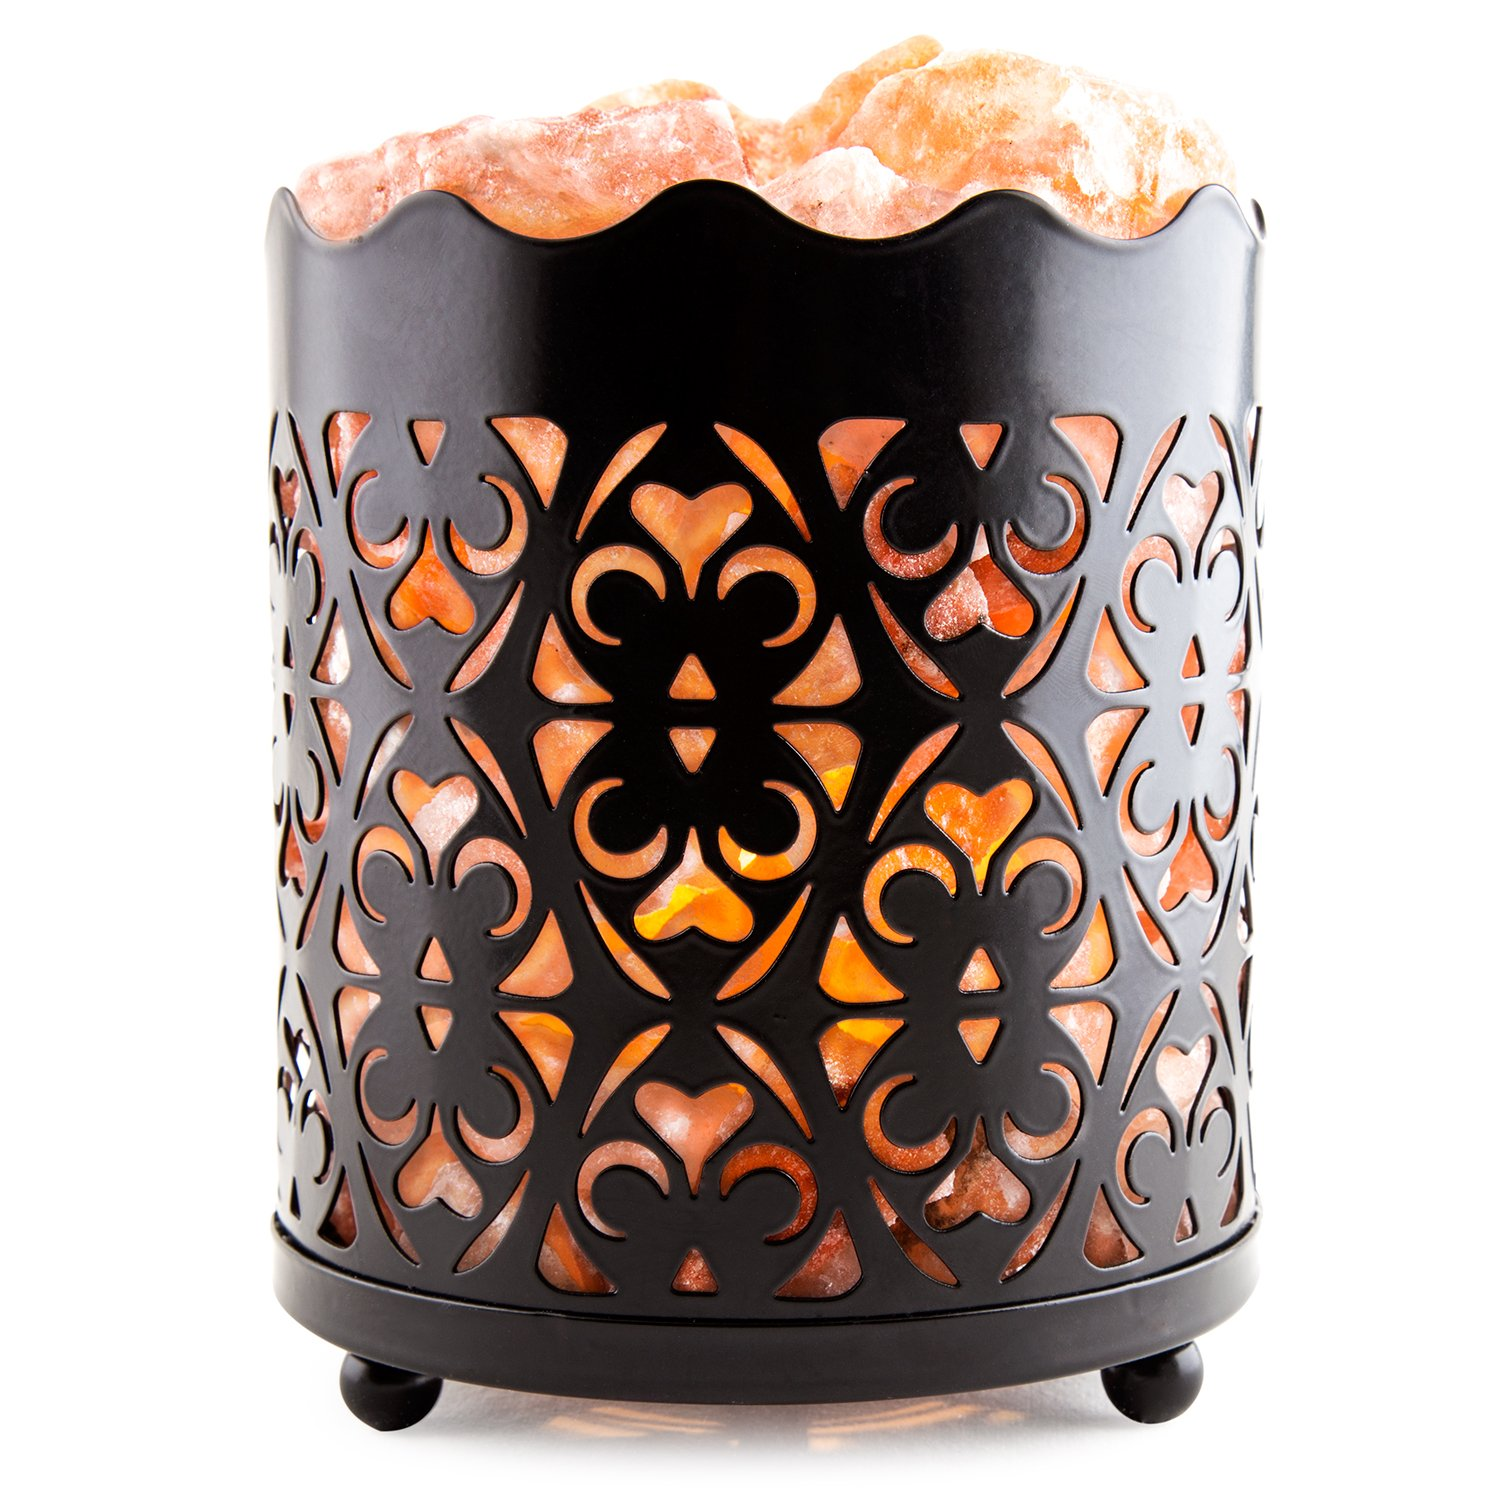 CRYSTAL DECOR Natural Himalayan Salt Lamp with Salt Chunks in Cylinder Design Metal Basket and Dimmable Cord - Choose Your Variation (Flanigan)